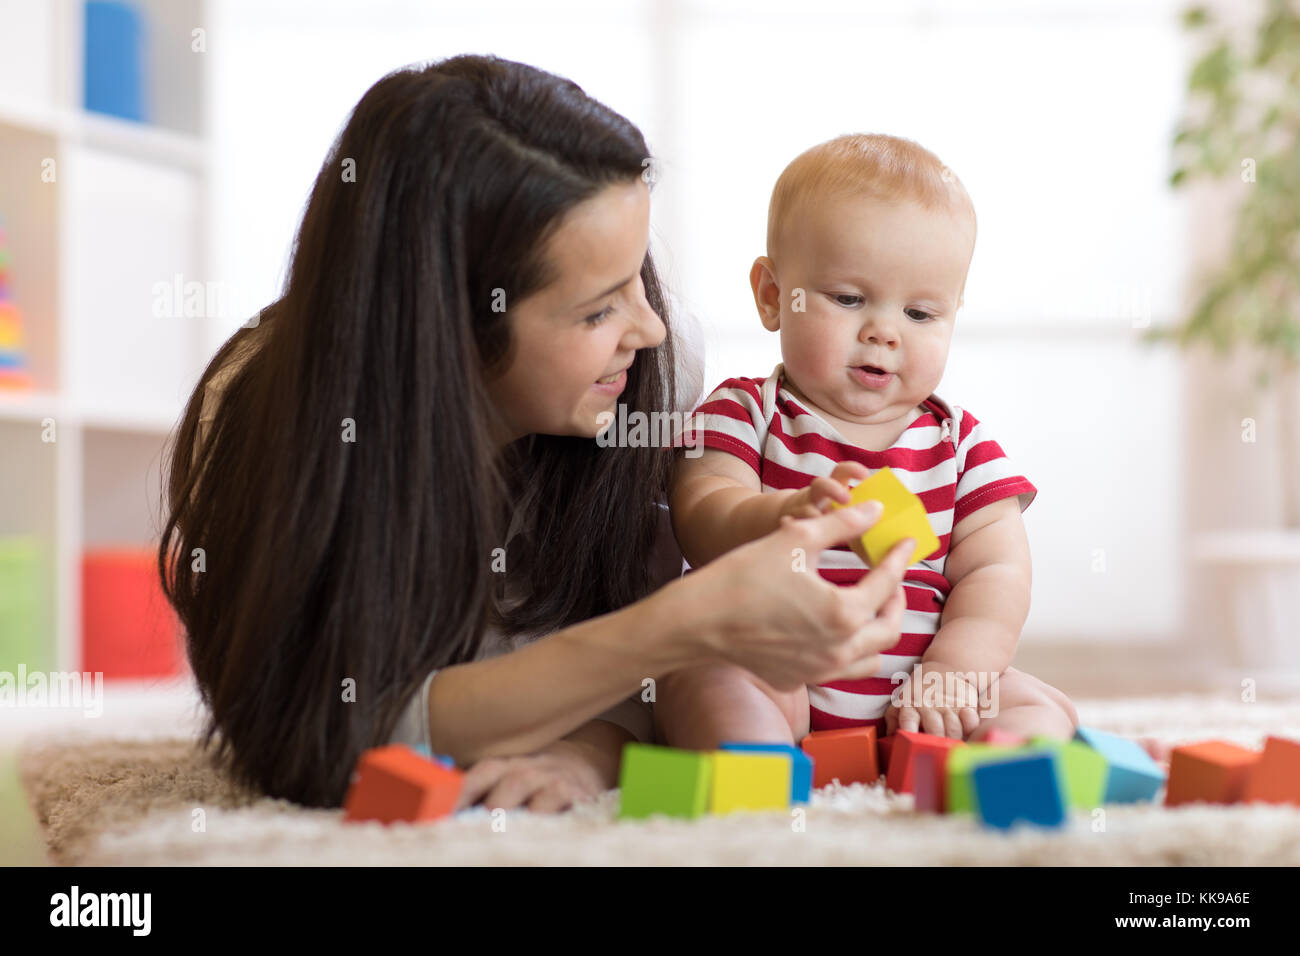 Mother with baby boy playing at home - Stock Image